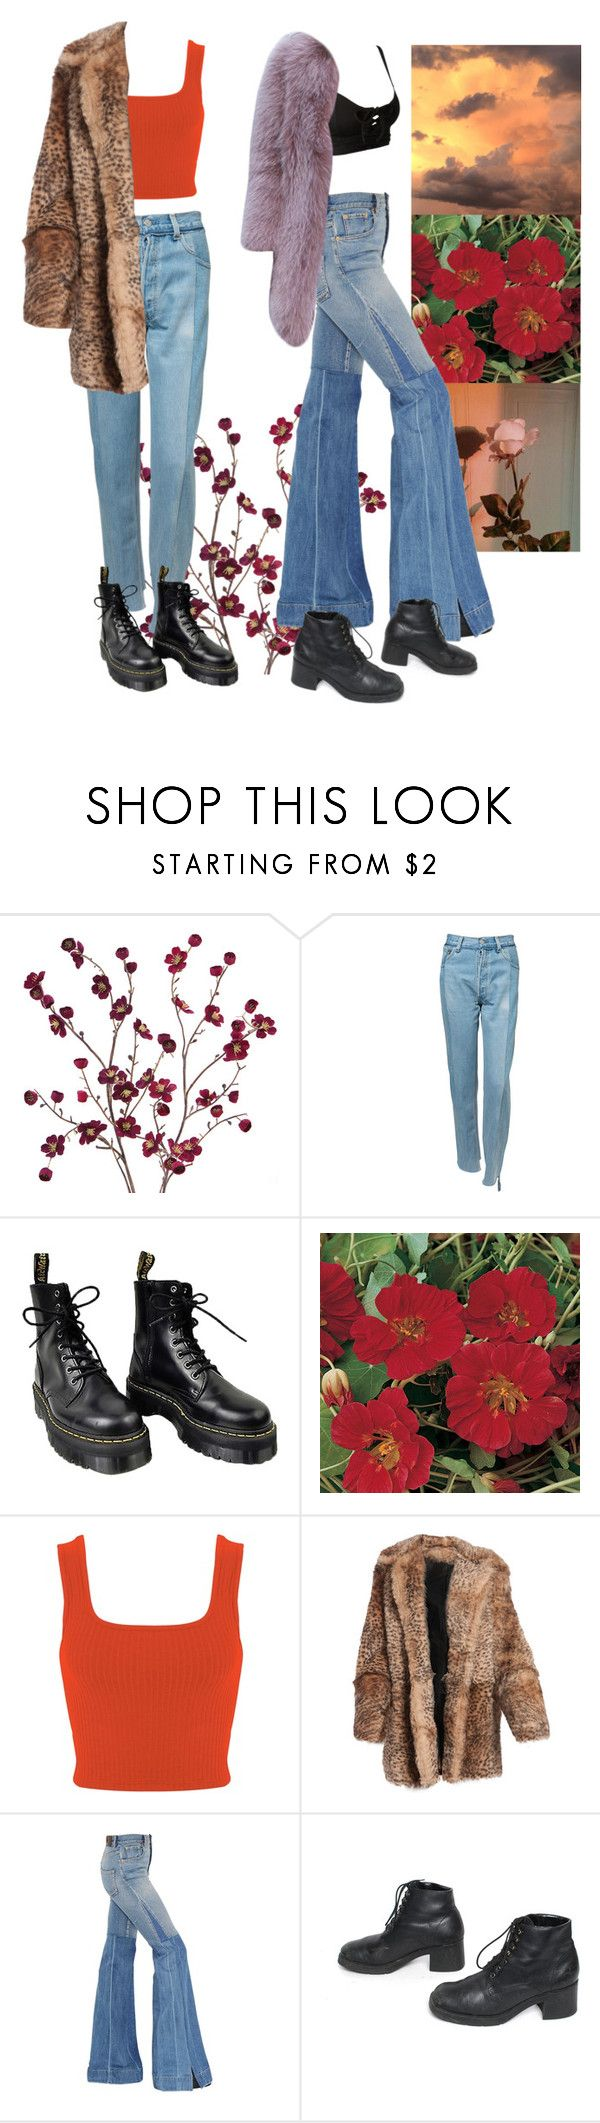 """Untitled #59"" by thisisawishlist ❤ liked on Polyvore featuring Cost Plus World Market, Vetements, Dr. Martens, Miss Selfridge, DKNY, Roberto Cavalli and Puma"